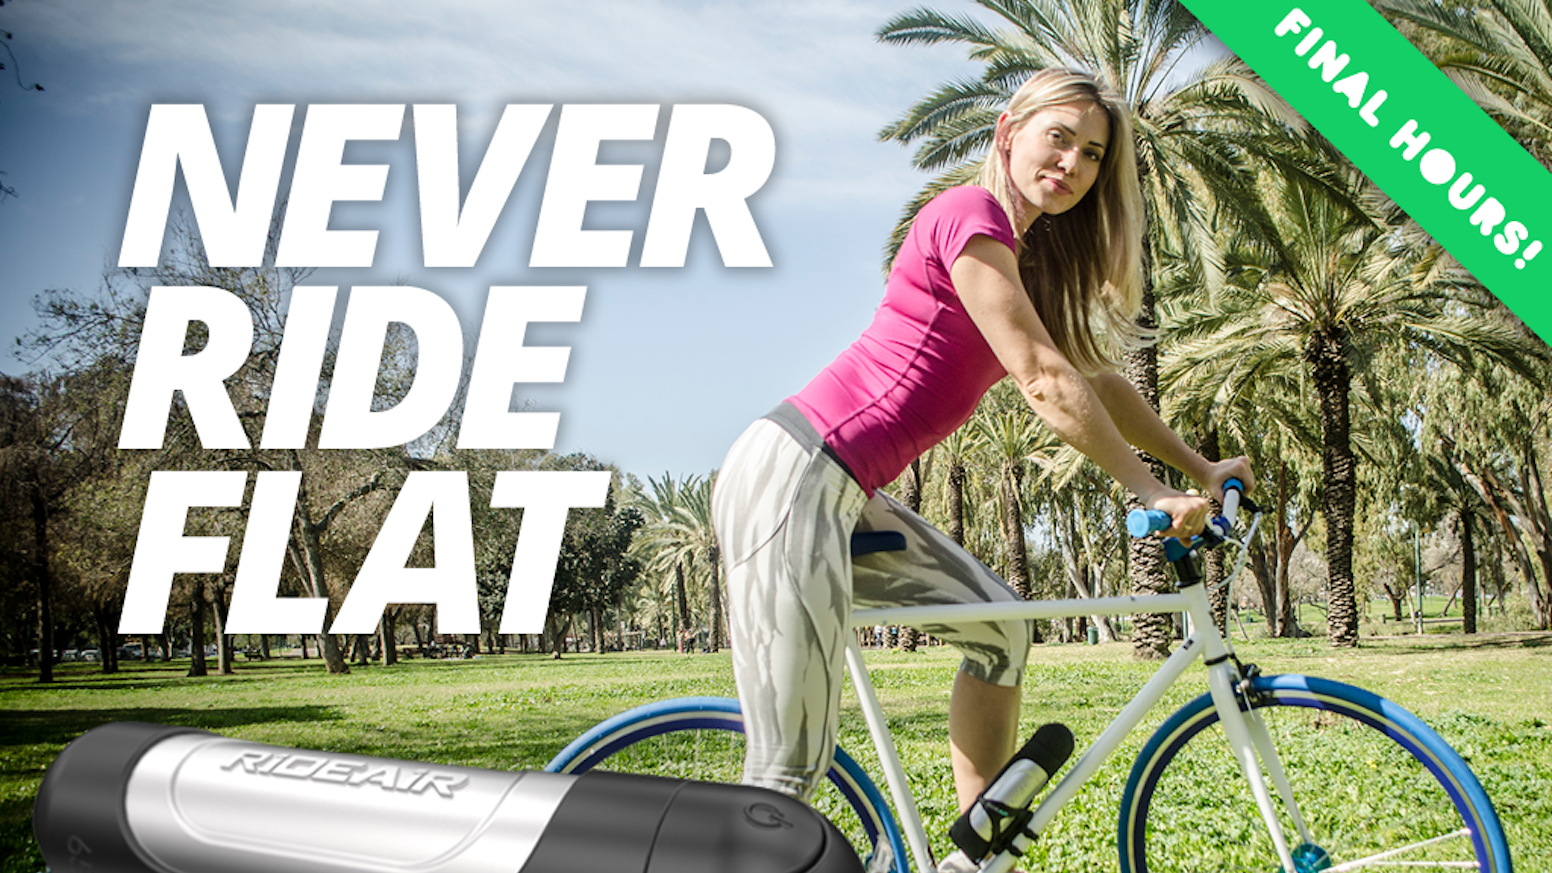 Rideair The Next Generation Of Effortless Air Pumps By